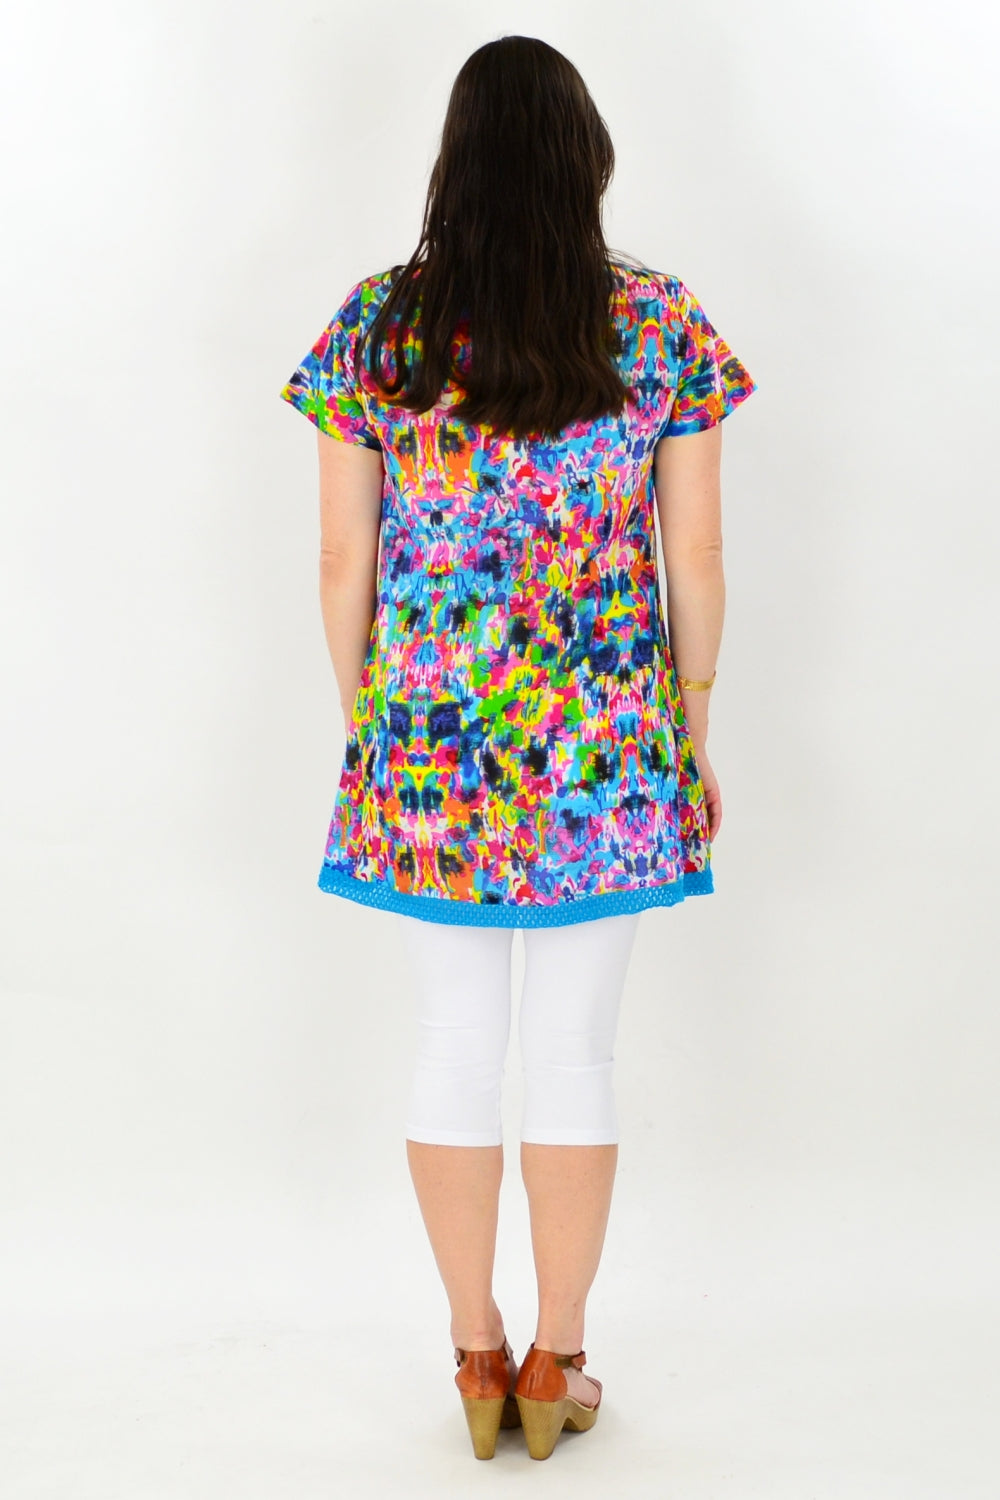 Colour Splash Short Sleeve Tunic - at I Love Tunics @ www.ilovetunics.com = Number One! Tunics Destination